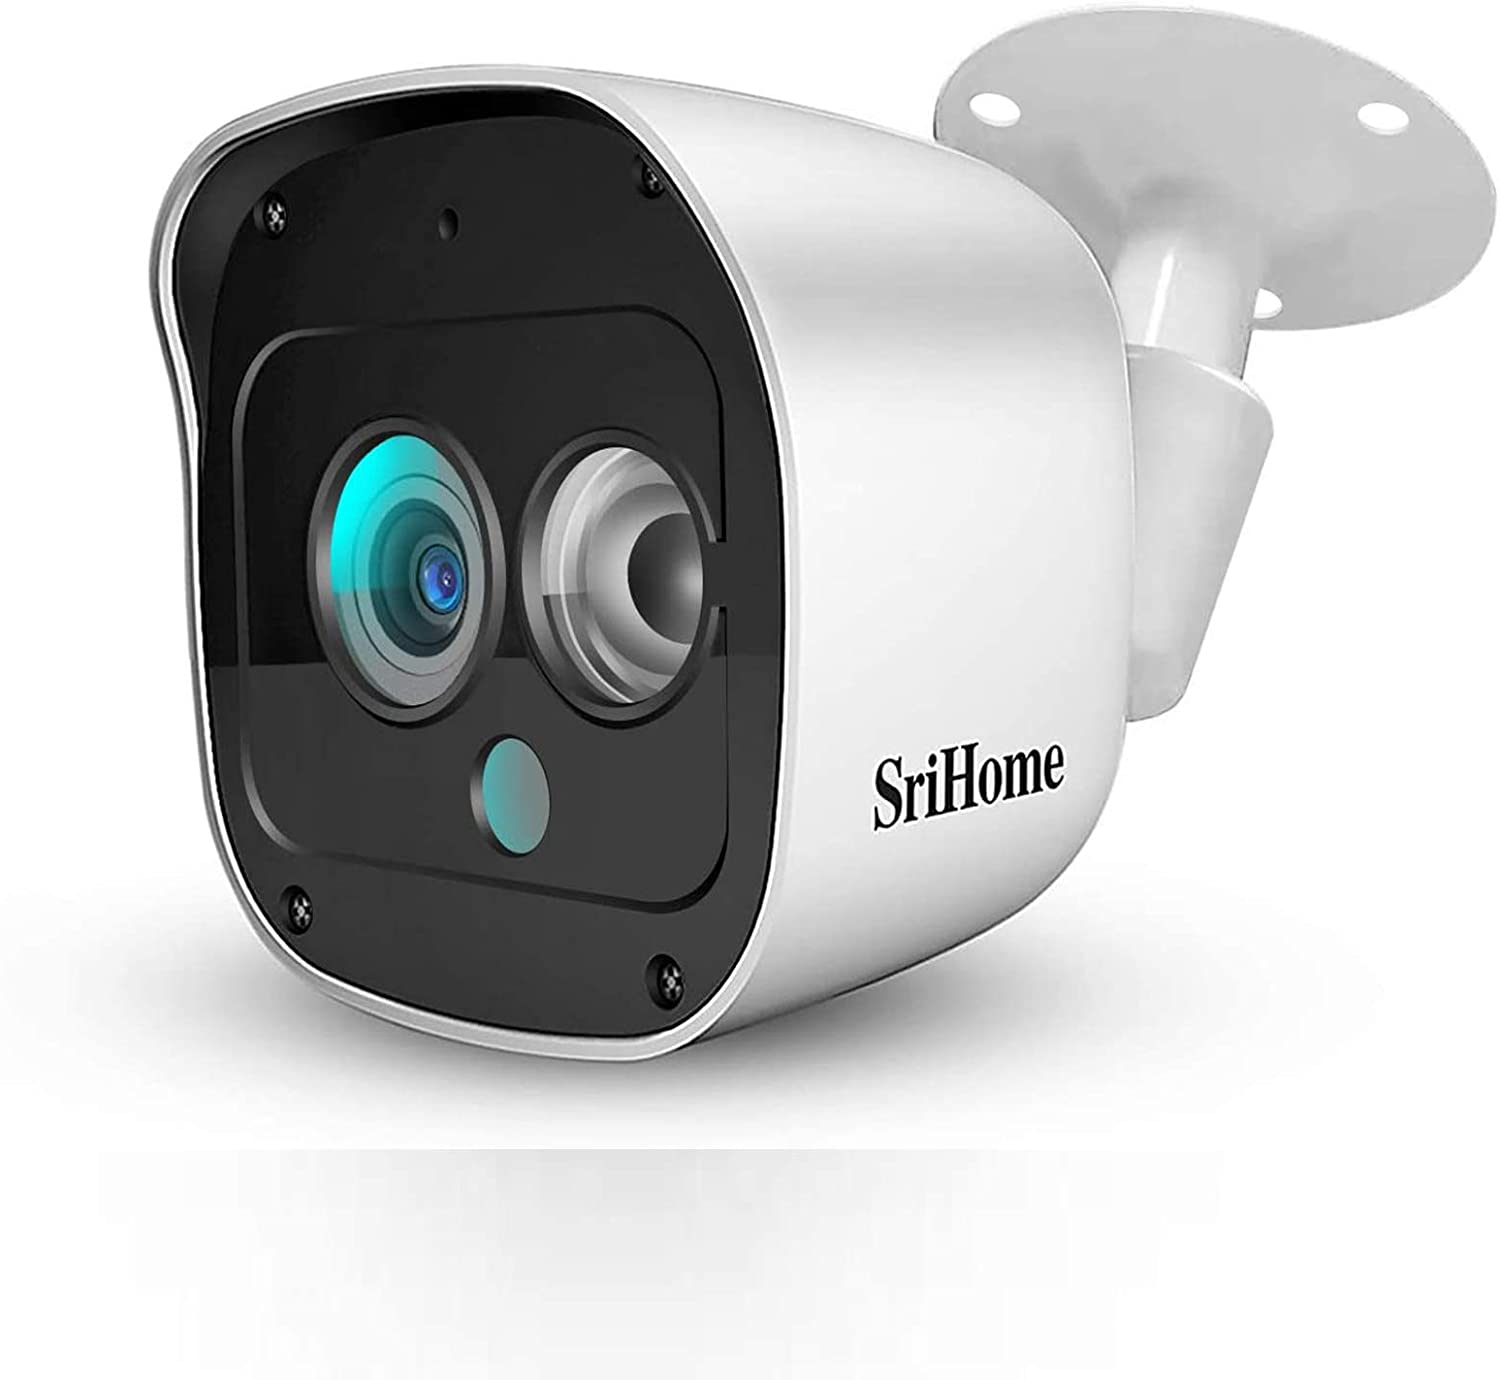 SriHome Outdoor Security Camera, 2304 x 1296Pixel IP Camerawith Motion Detection and 10m Night Vision Mode, Support Two-Way Audio andReal-time Monitor, IP66 Waterproof